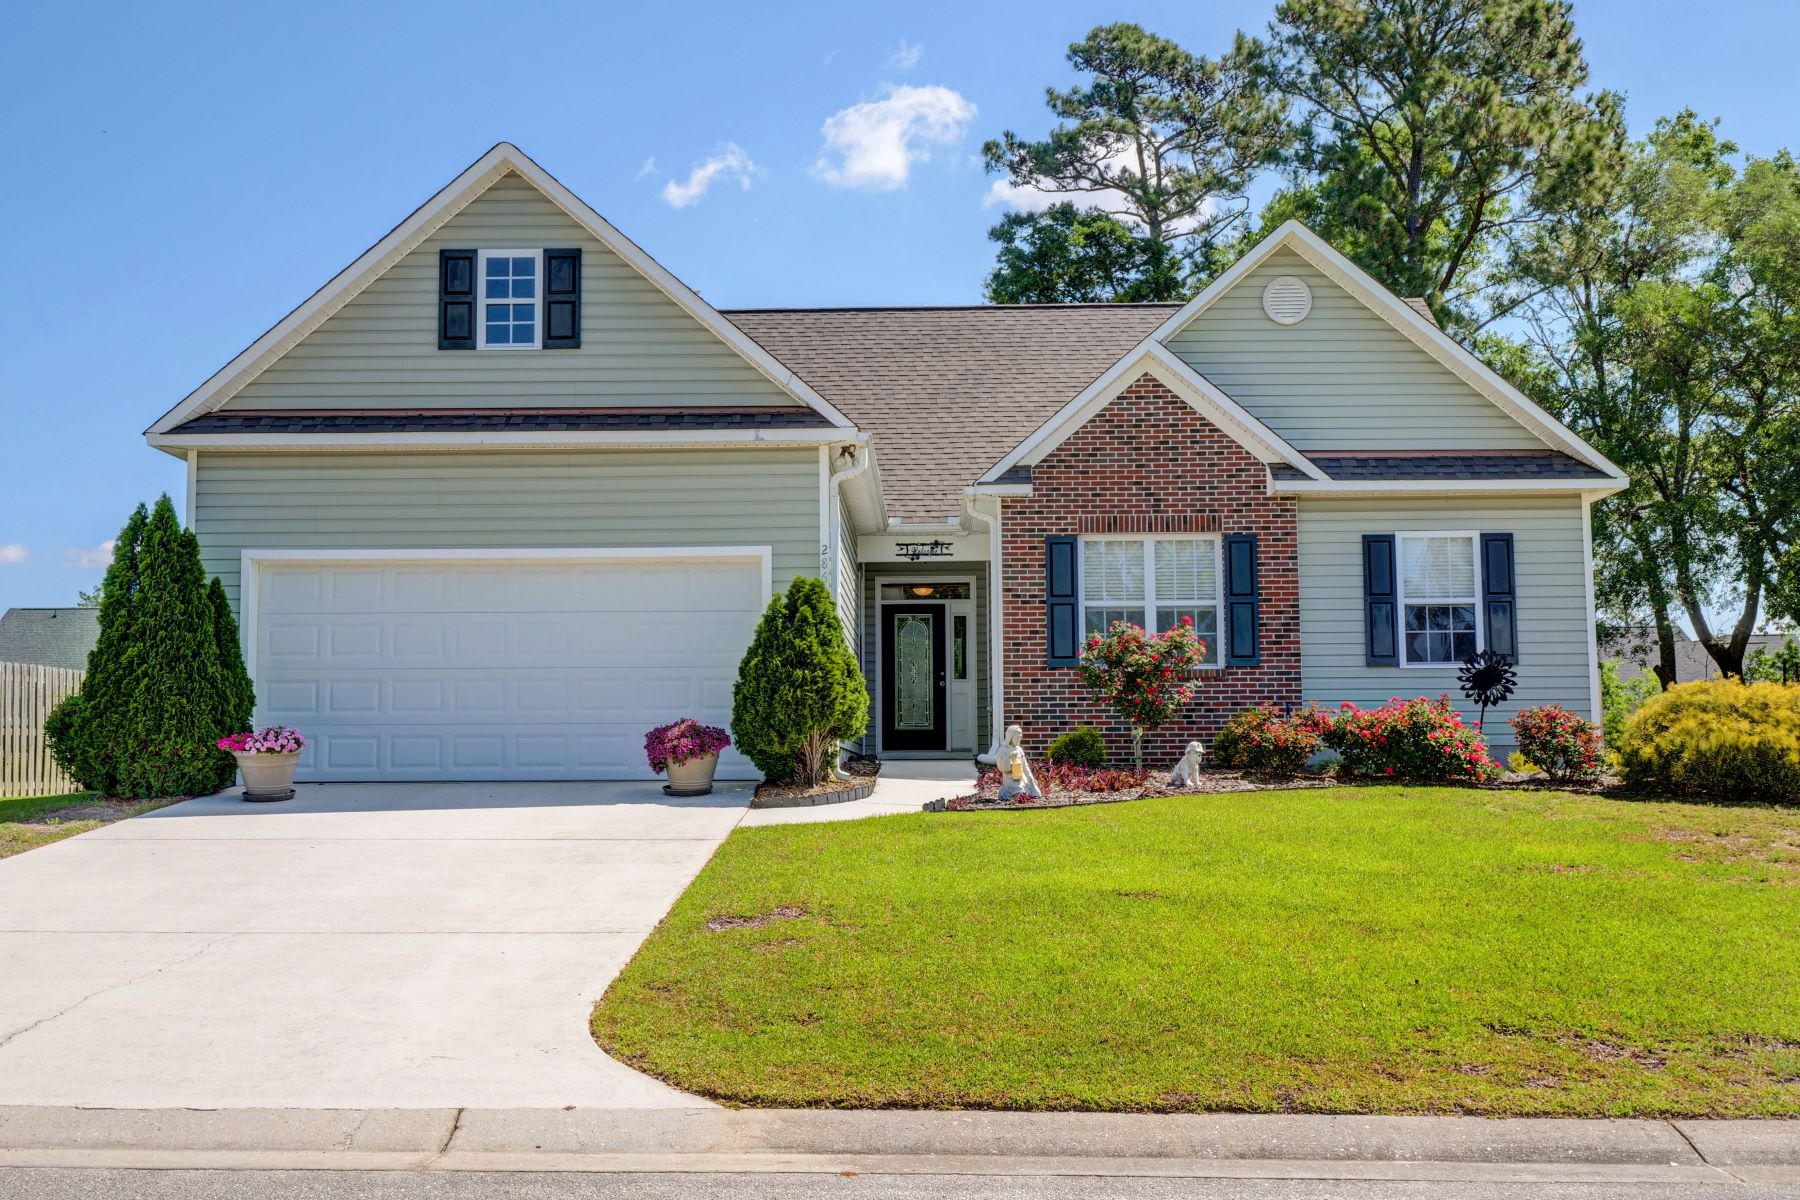 Single Family Homes for Sale at Charming Ranch Style Home 286 Emerald Drive Hampstead, North Carolina 28443 United States